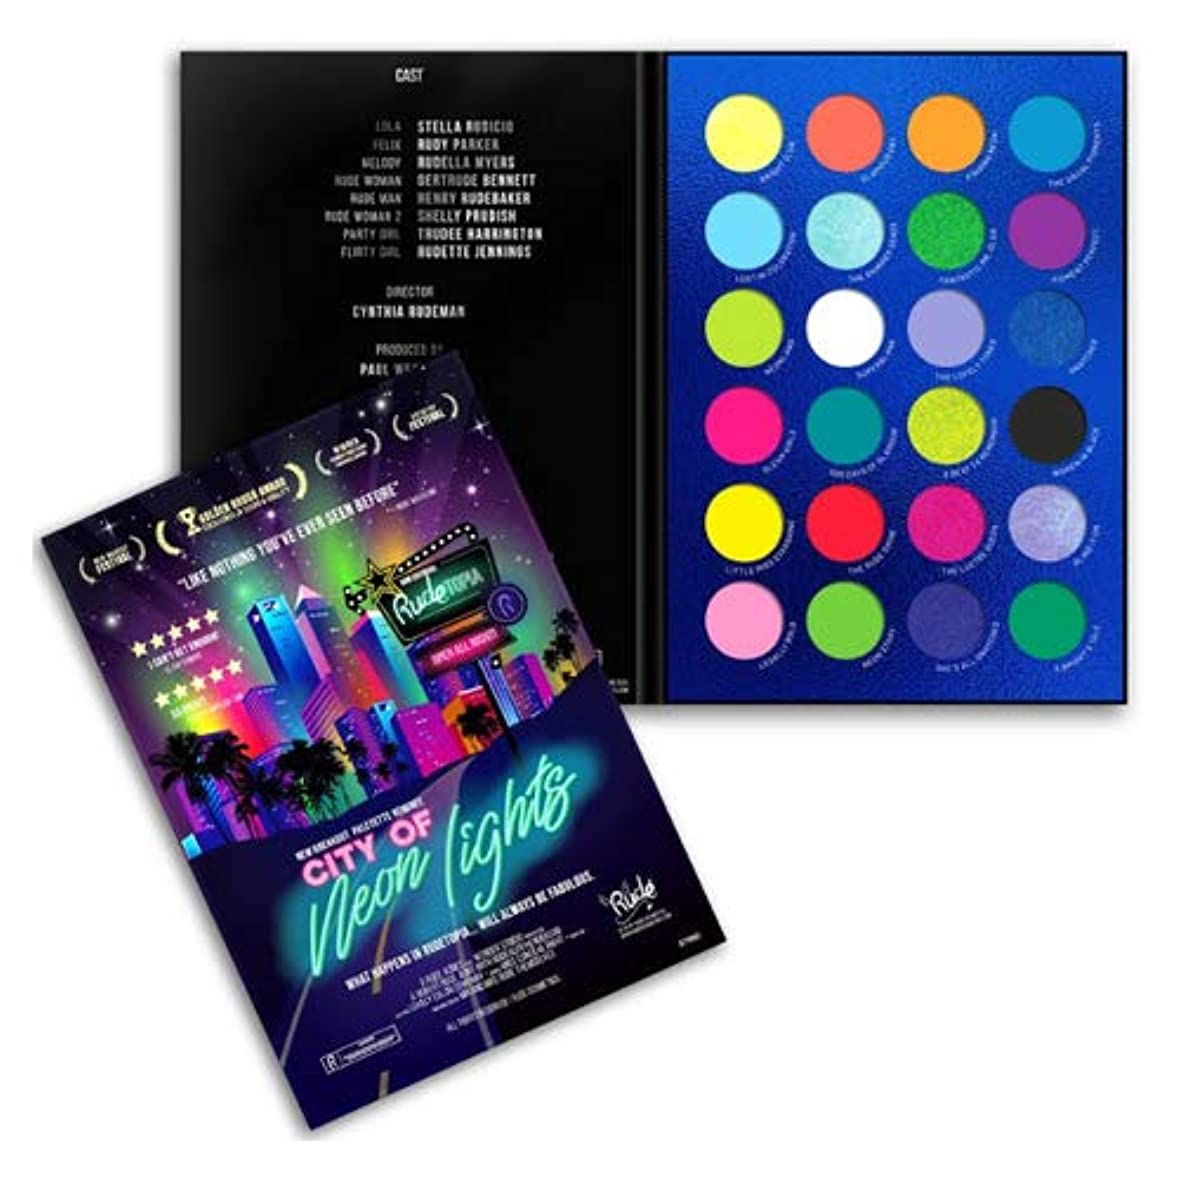 遅らせる機知に富んだシャツRUDE City of Neon Lights - 24 Vibrant Pigment & Eyeshadow Palette (並行輸入品)